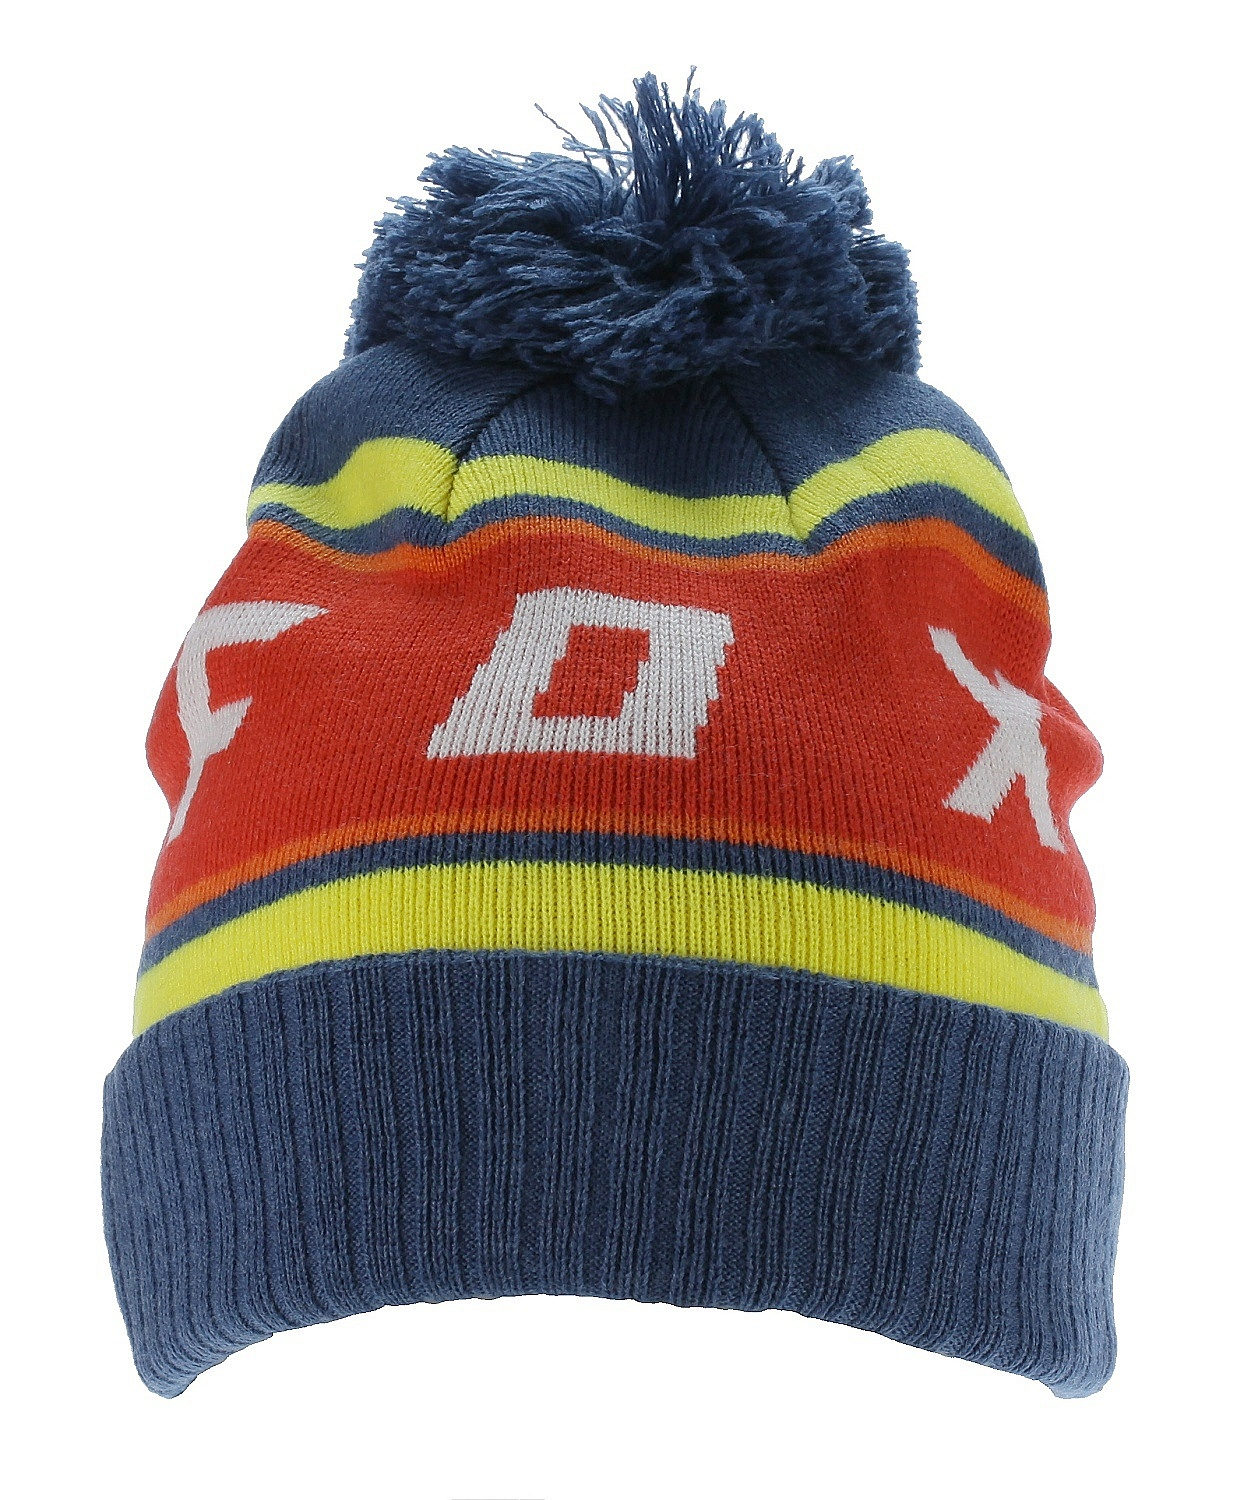 dfbc4f2230 čiapka Fox Black Diamond Pom - Dusty Blue - Snowboard shop ...